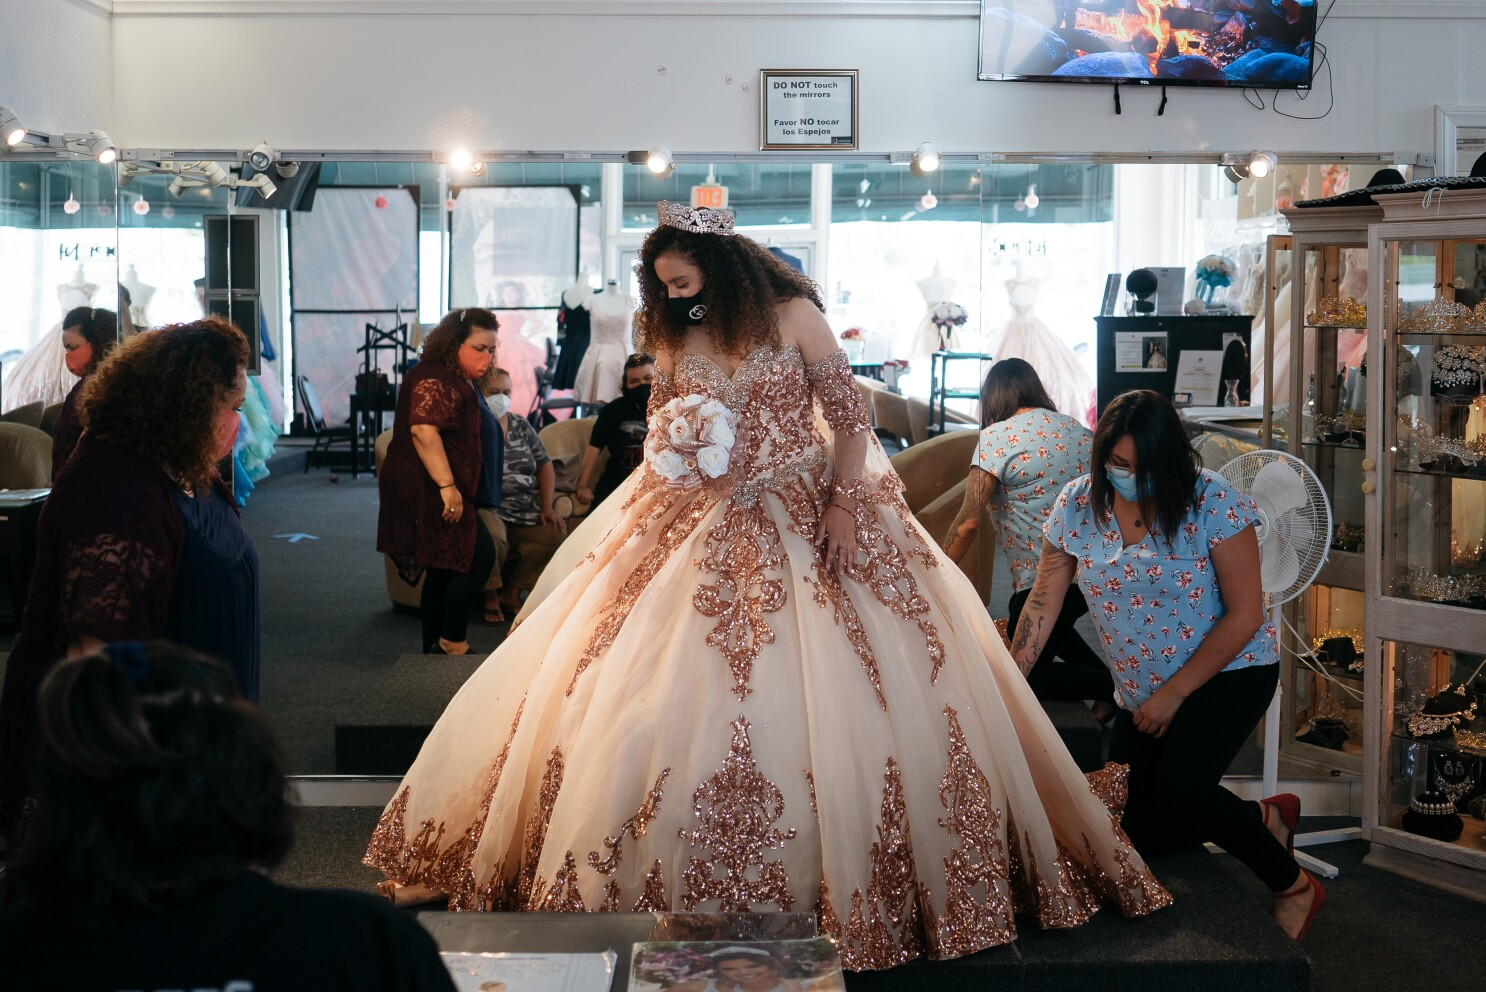 Dreams Placed On Hold Covid 19 Wipes Out Years Of Planning For Quinceaneras The San Diego Union Tribune